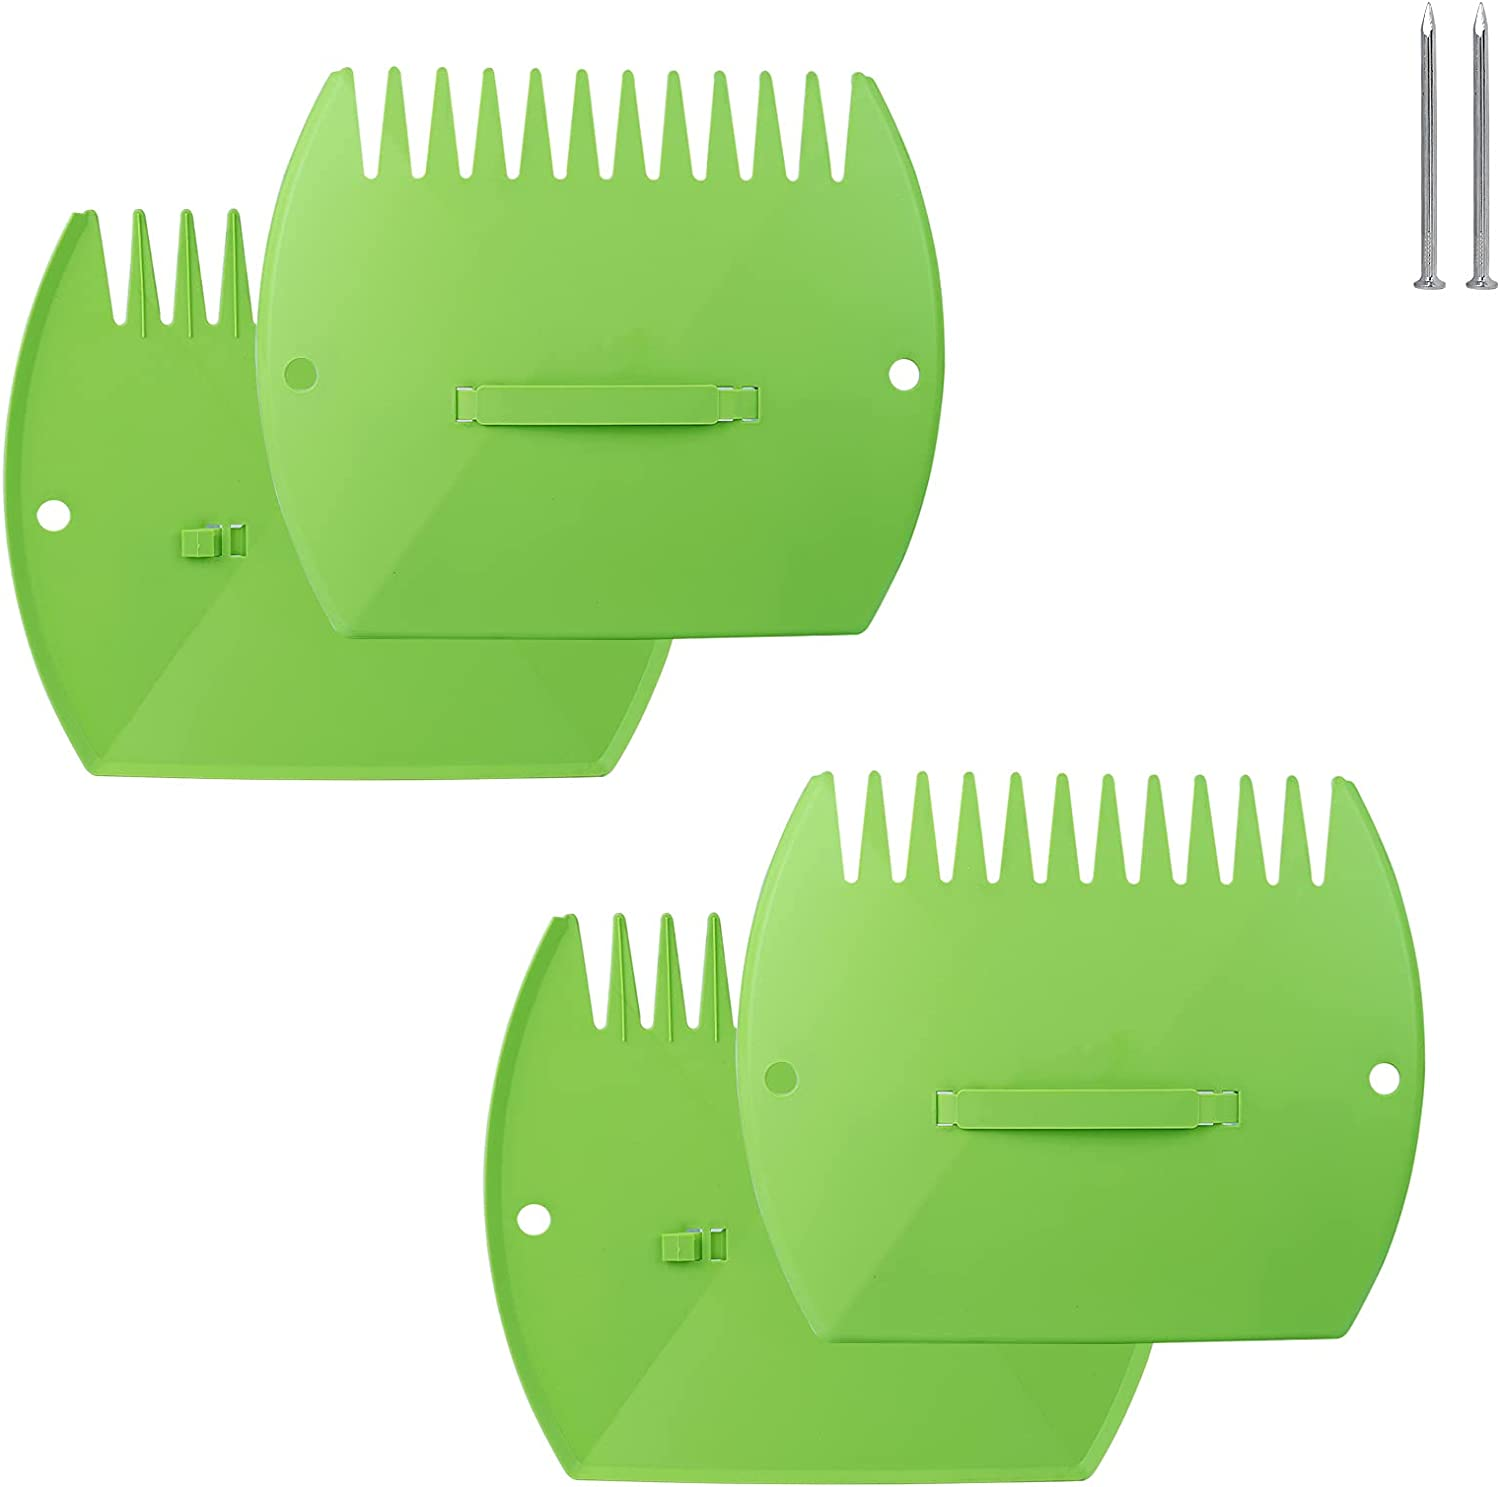 FIVEAGE 2 Pair Garden and Yard Leaf Scoops Hand Rakes, Leaf Grabber Set, Use for Leaves, Leaf Picker,Grass Clippings and Trash, Green (with 2 Pcs Steel Nails)